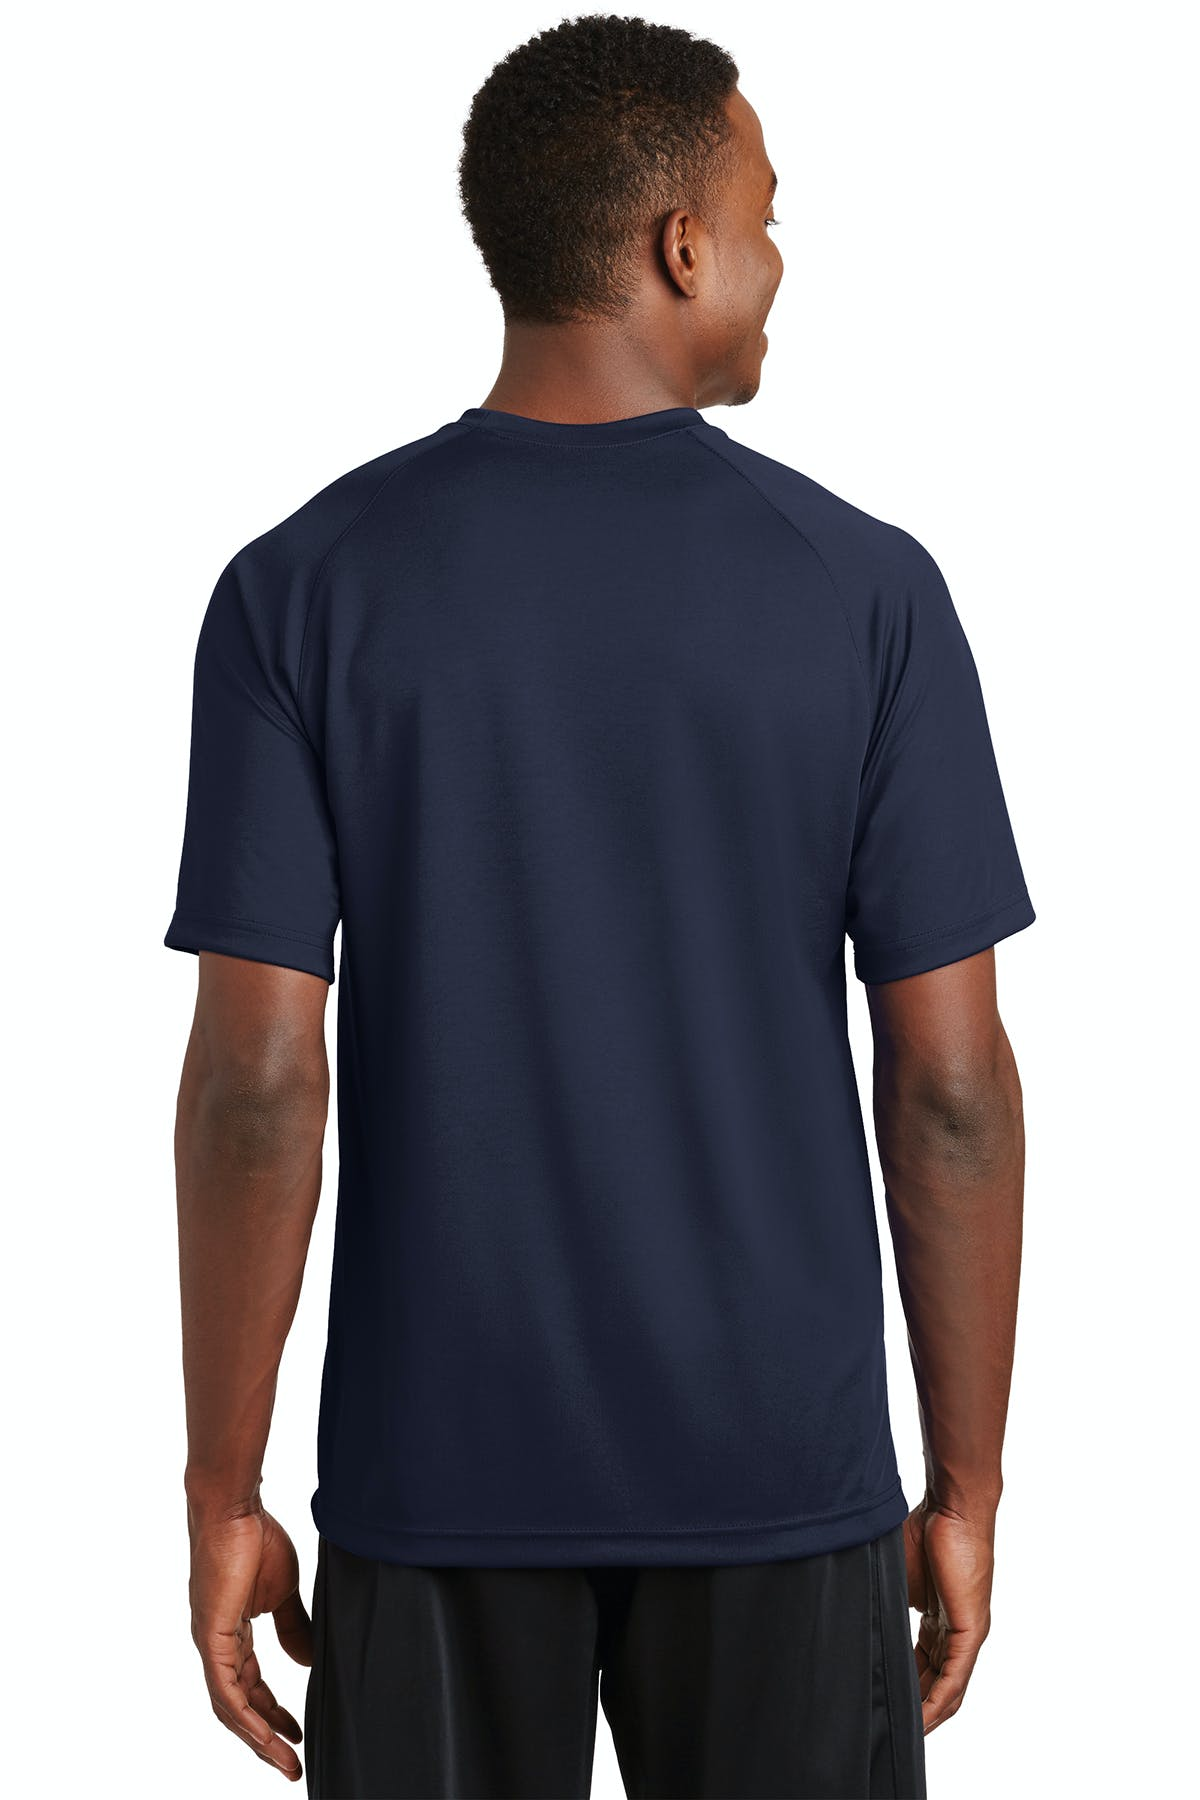 Sport-Tek® Dry Zone® Short Sleeve Raglan T-Shirt - sold by PRINT CITY GRAPHICS, INC